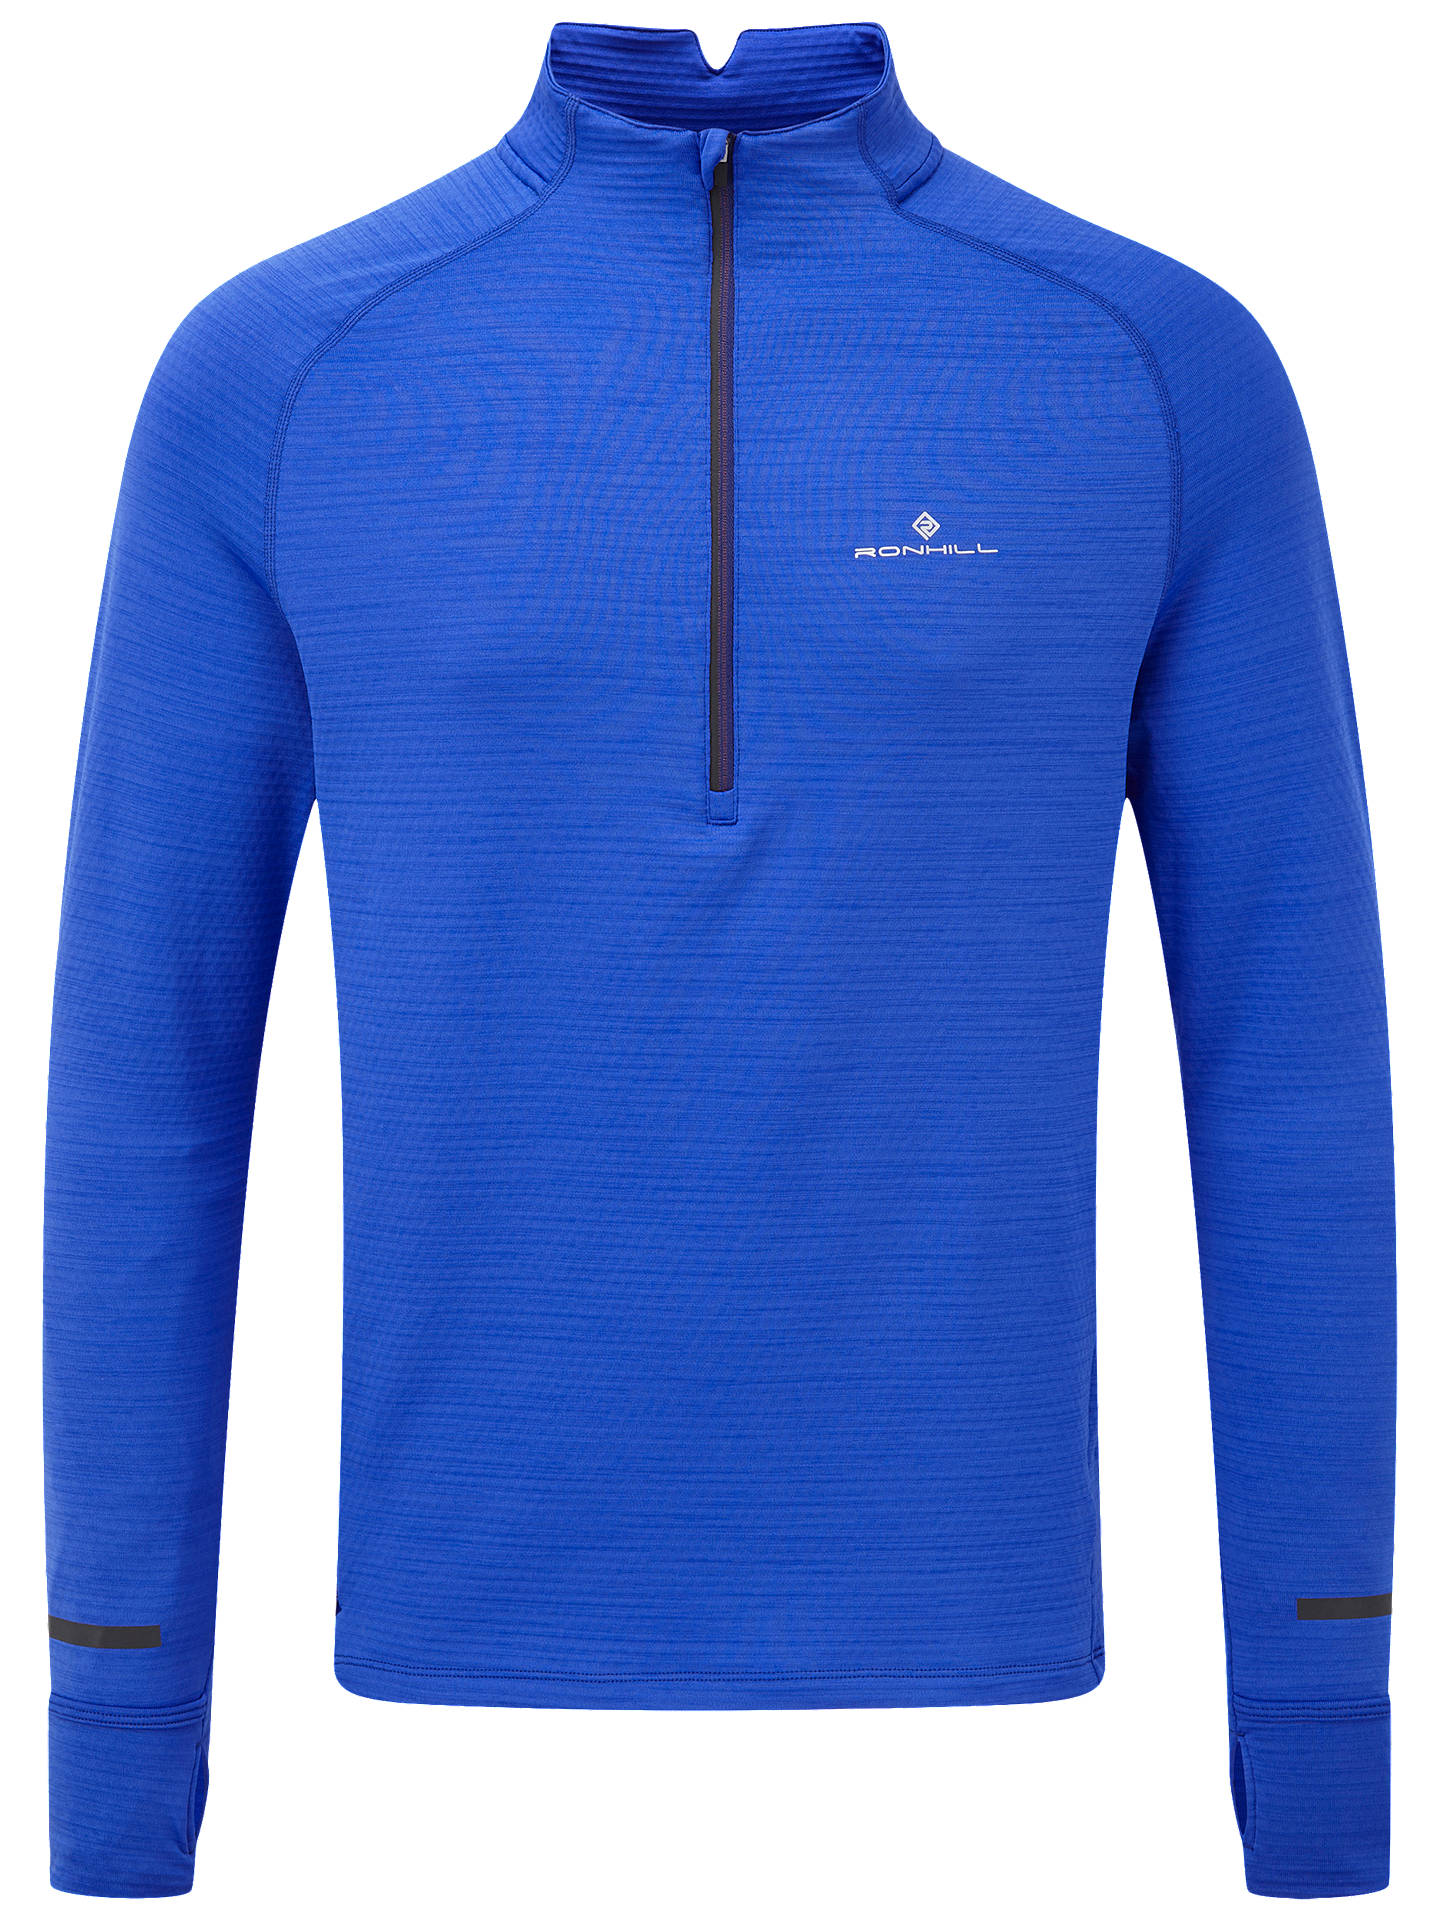 BuyRonhill Matrix 1/2 Zip Long Sleeve Running Top, Azurite, L Online at johnlewis.com